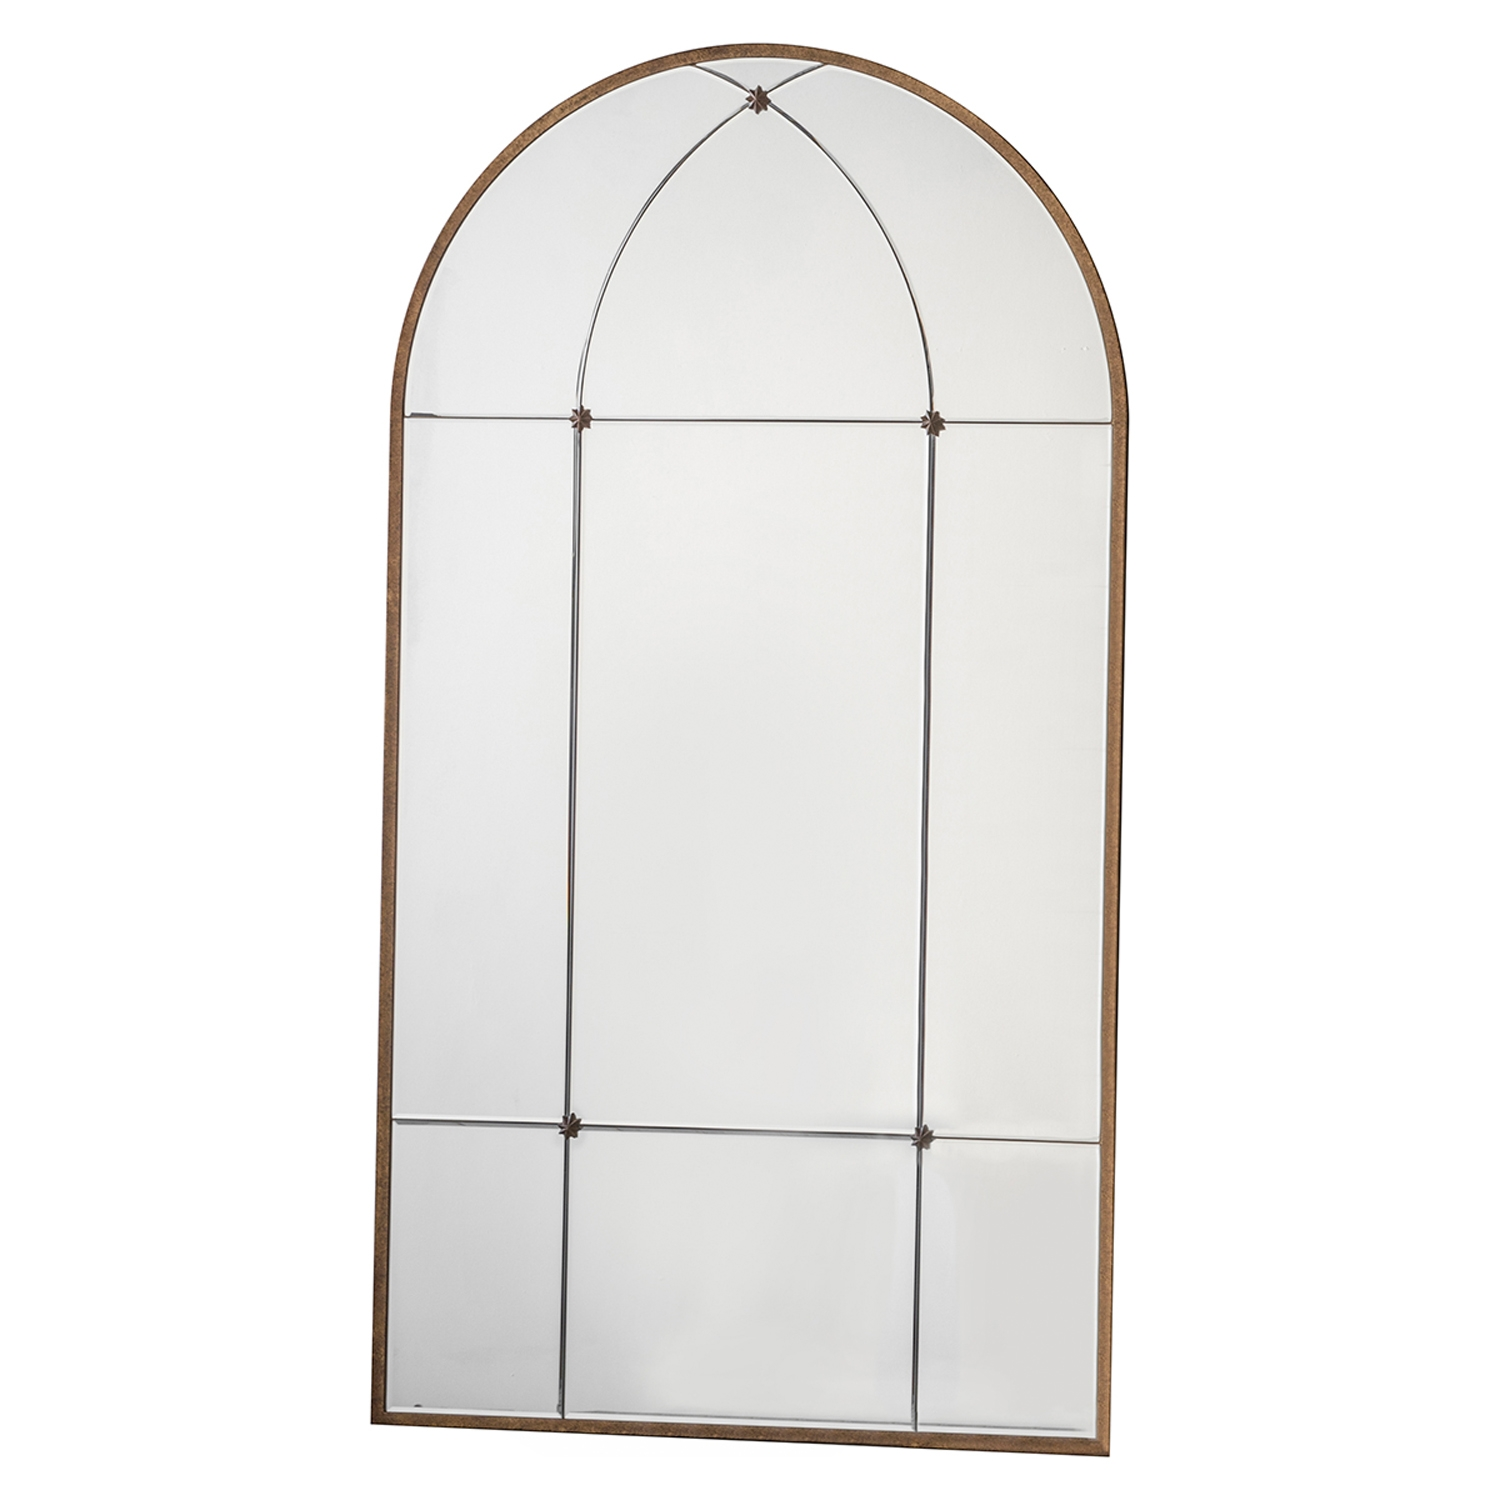 Image of Gallery Ariah Arched Mirror, Bronze